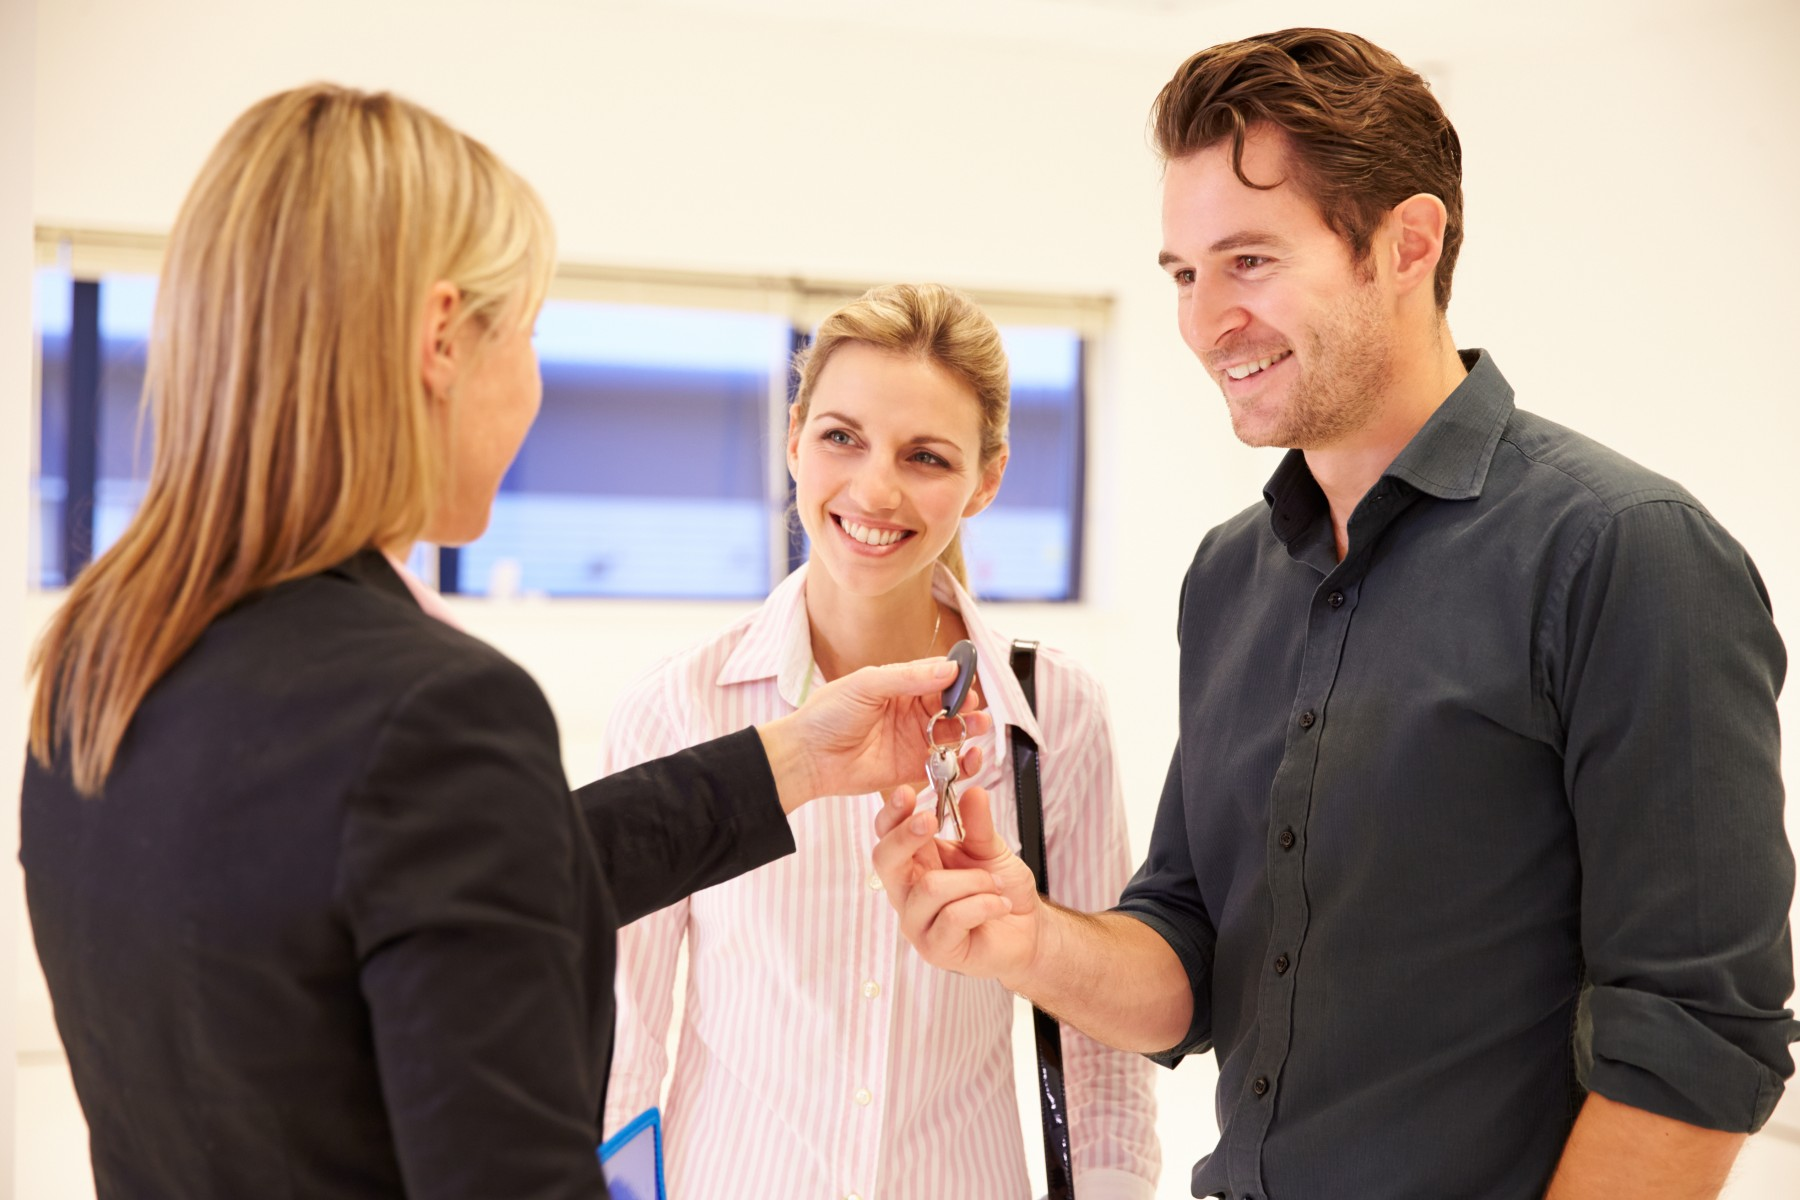 Real Estate Advocacy Business For Sale